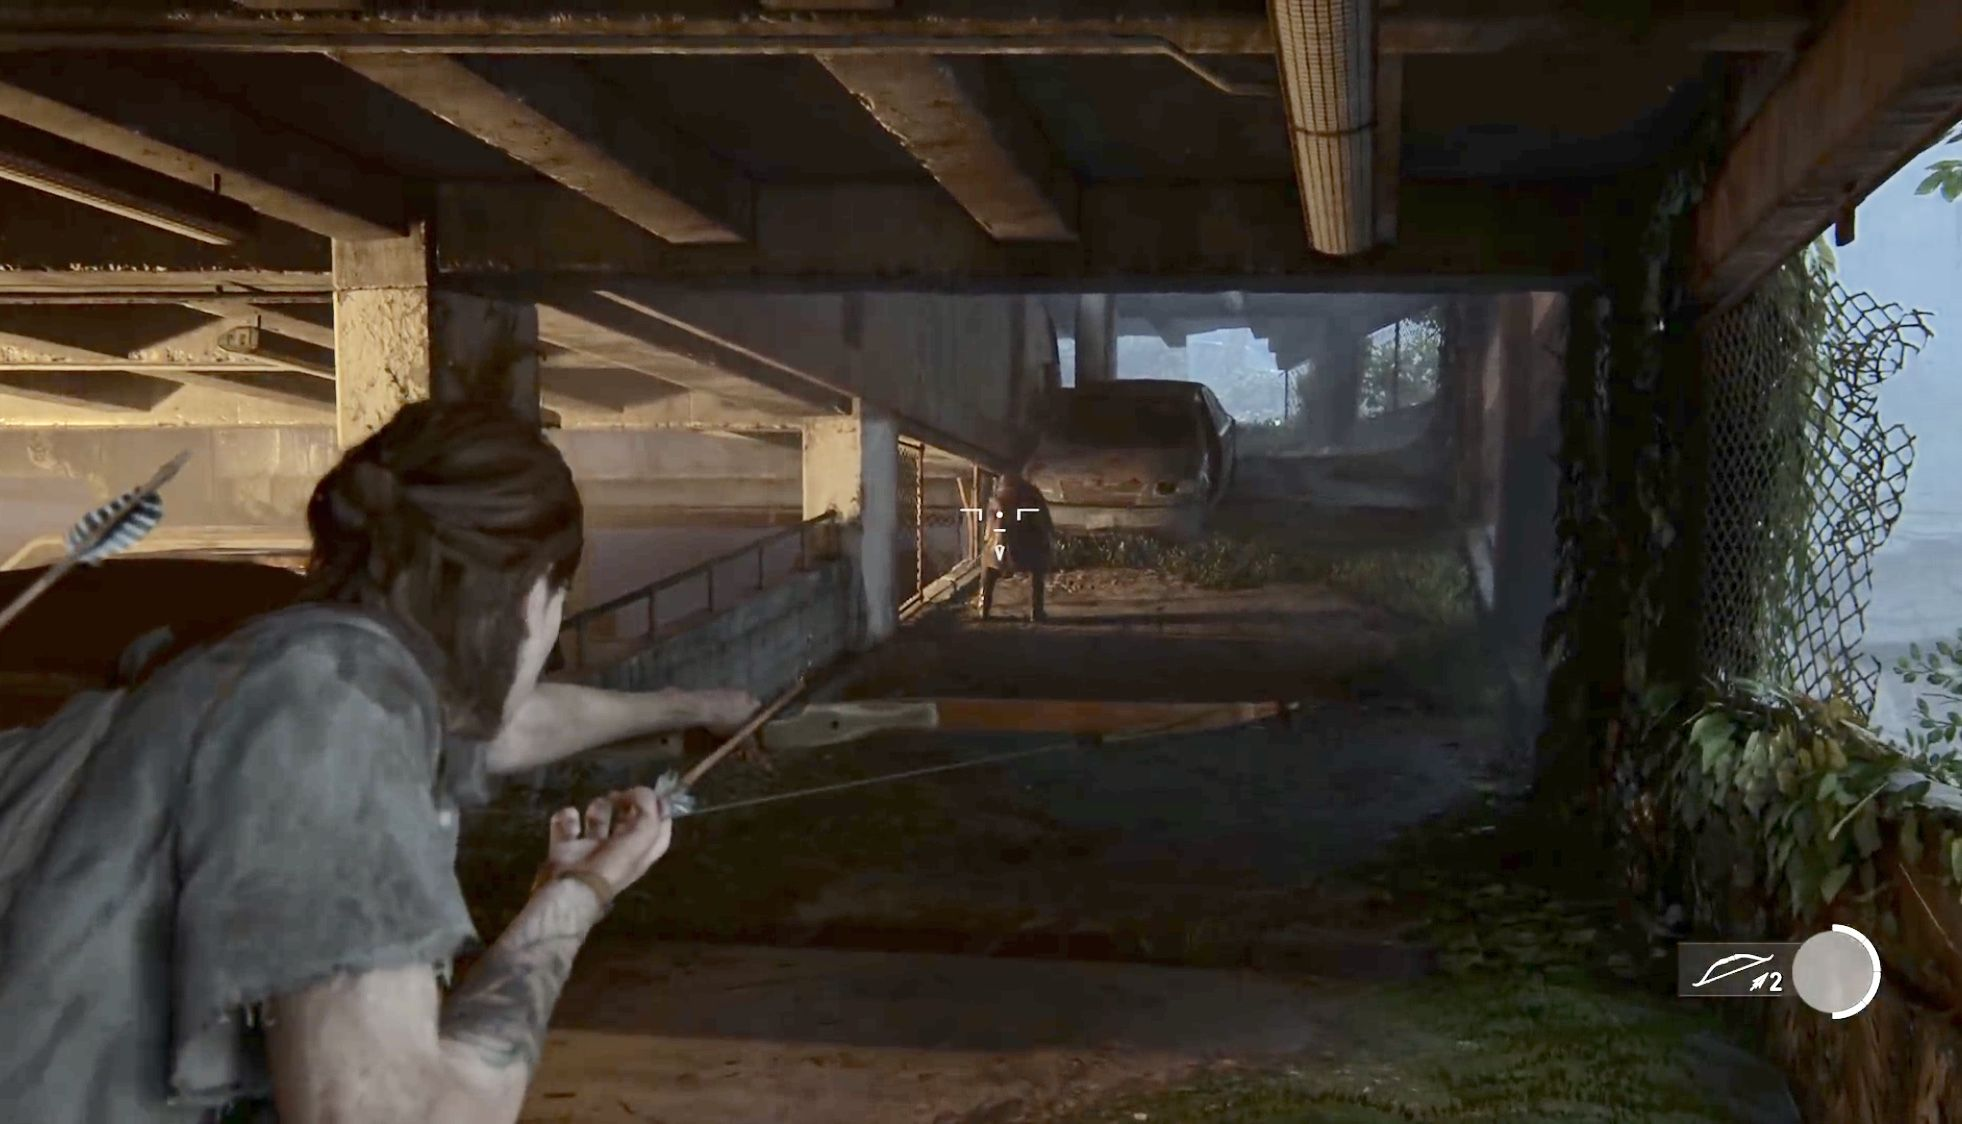 The Last of Us Part 2 gameplay demo from E3 | The last of us, Zombie art,  Art